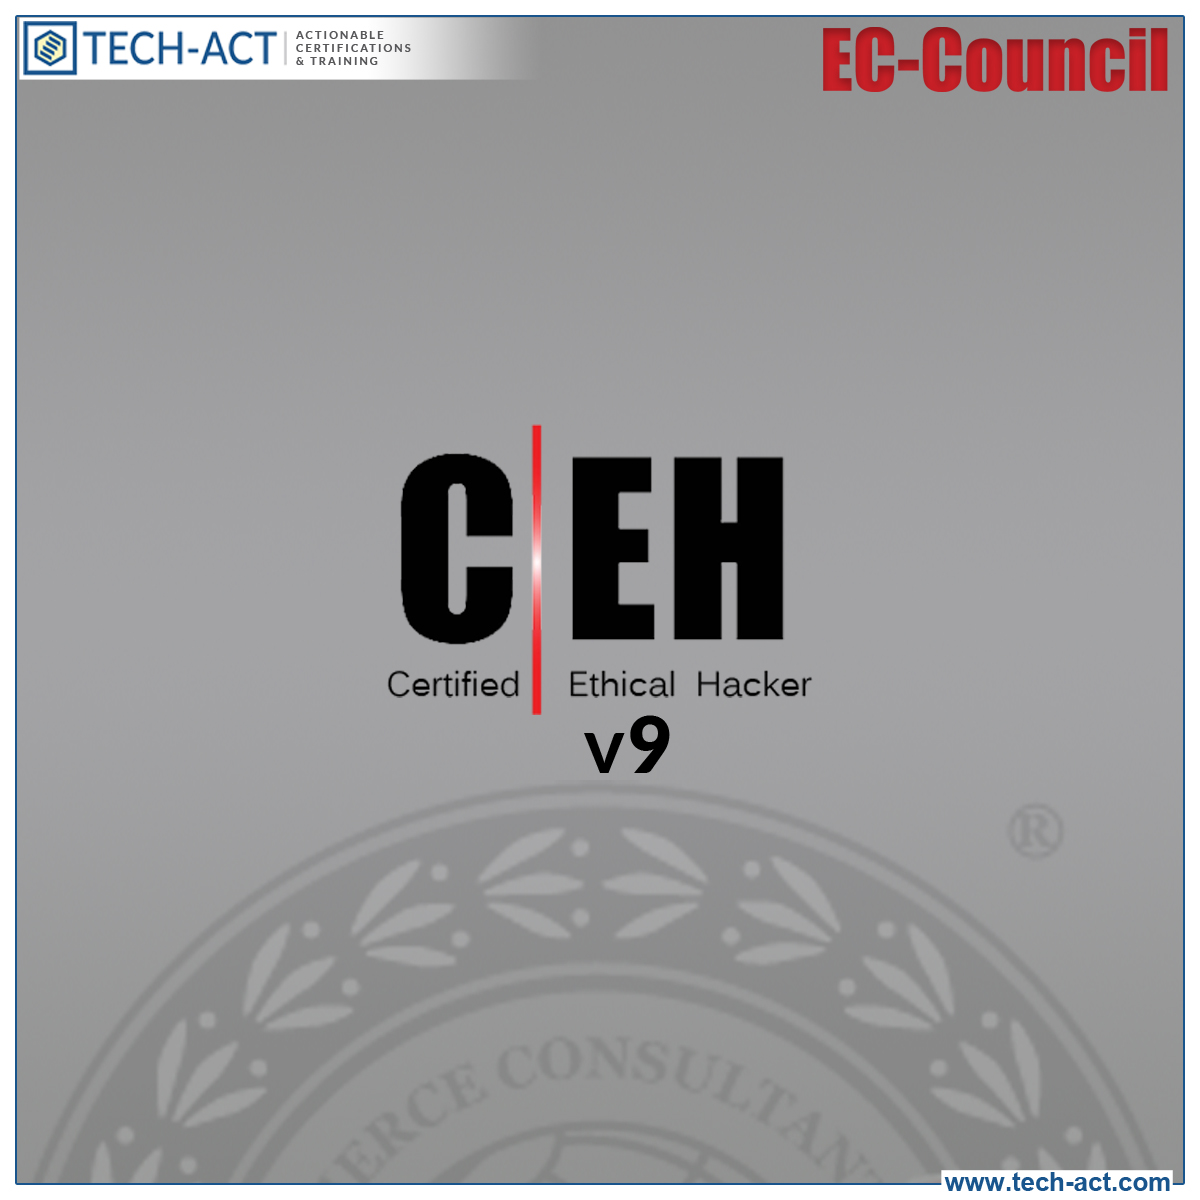 Ceh Certified Ethical Hacker Certification Ceh V9 Tech Act